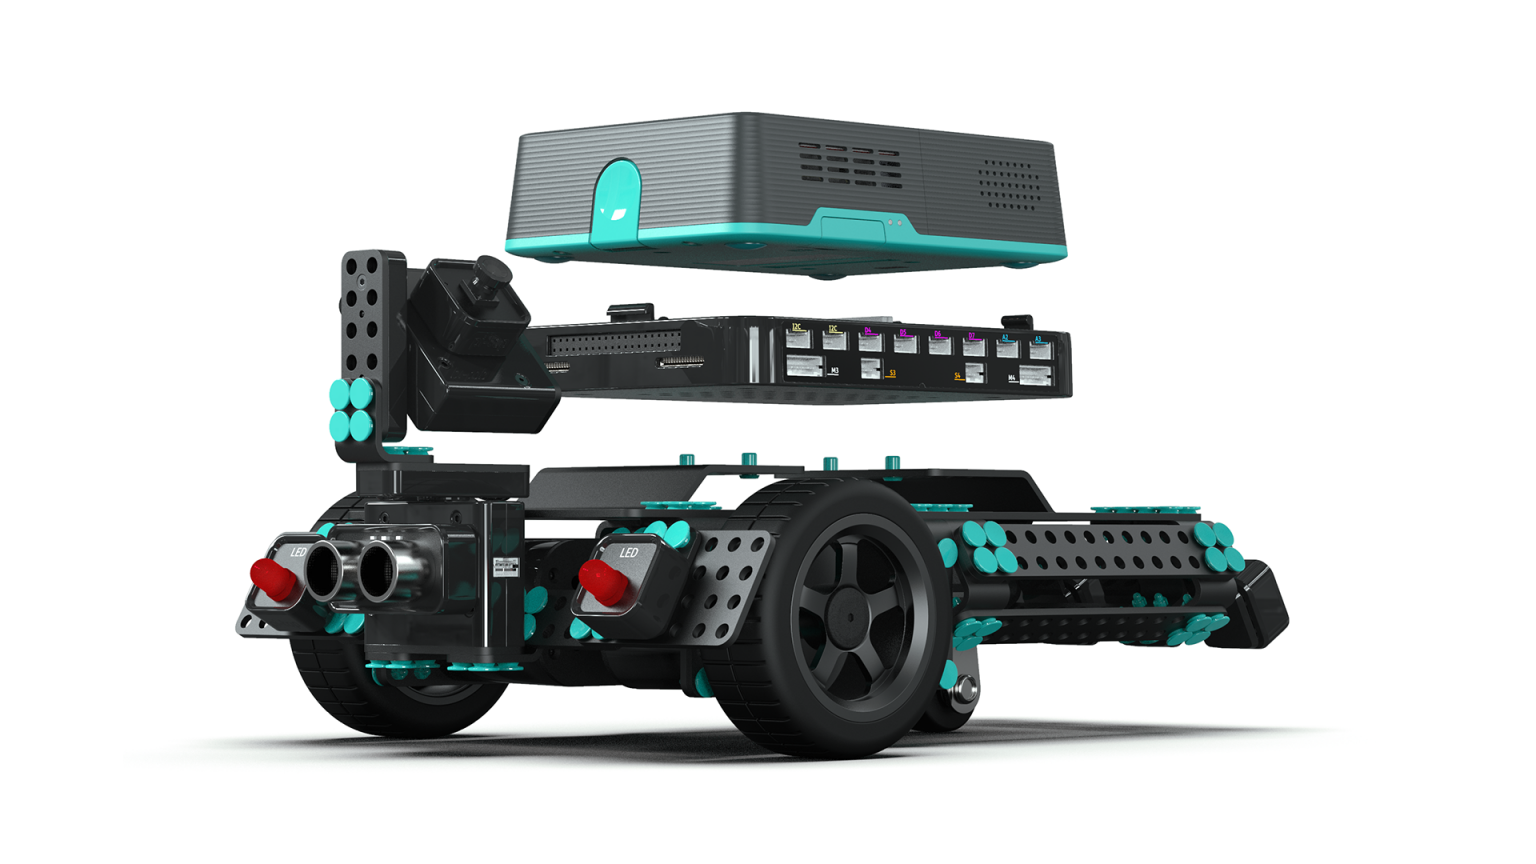 Raspberry Pi-powered Robotics Kit makes entrance into CES